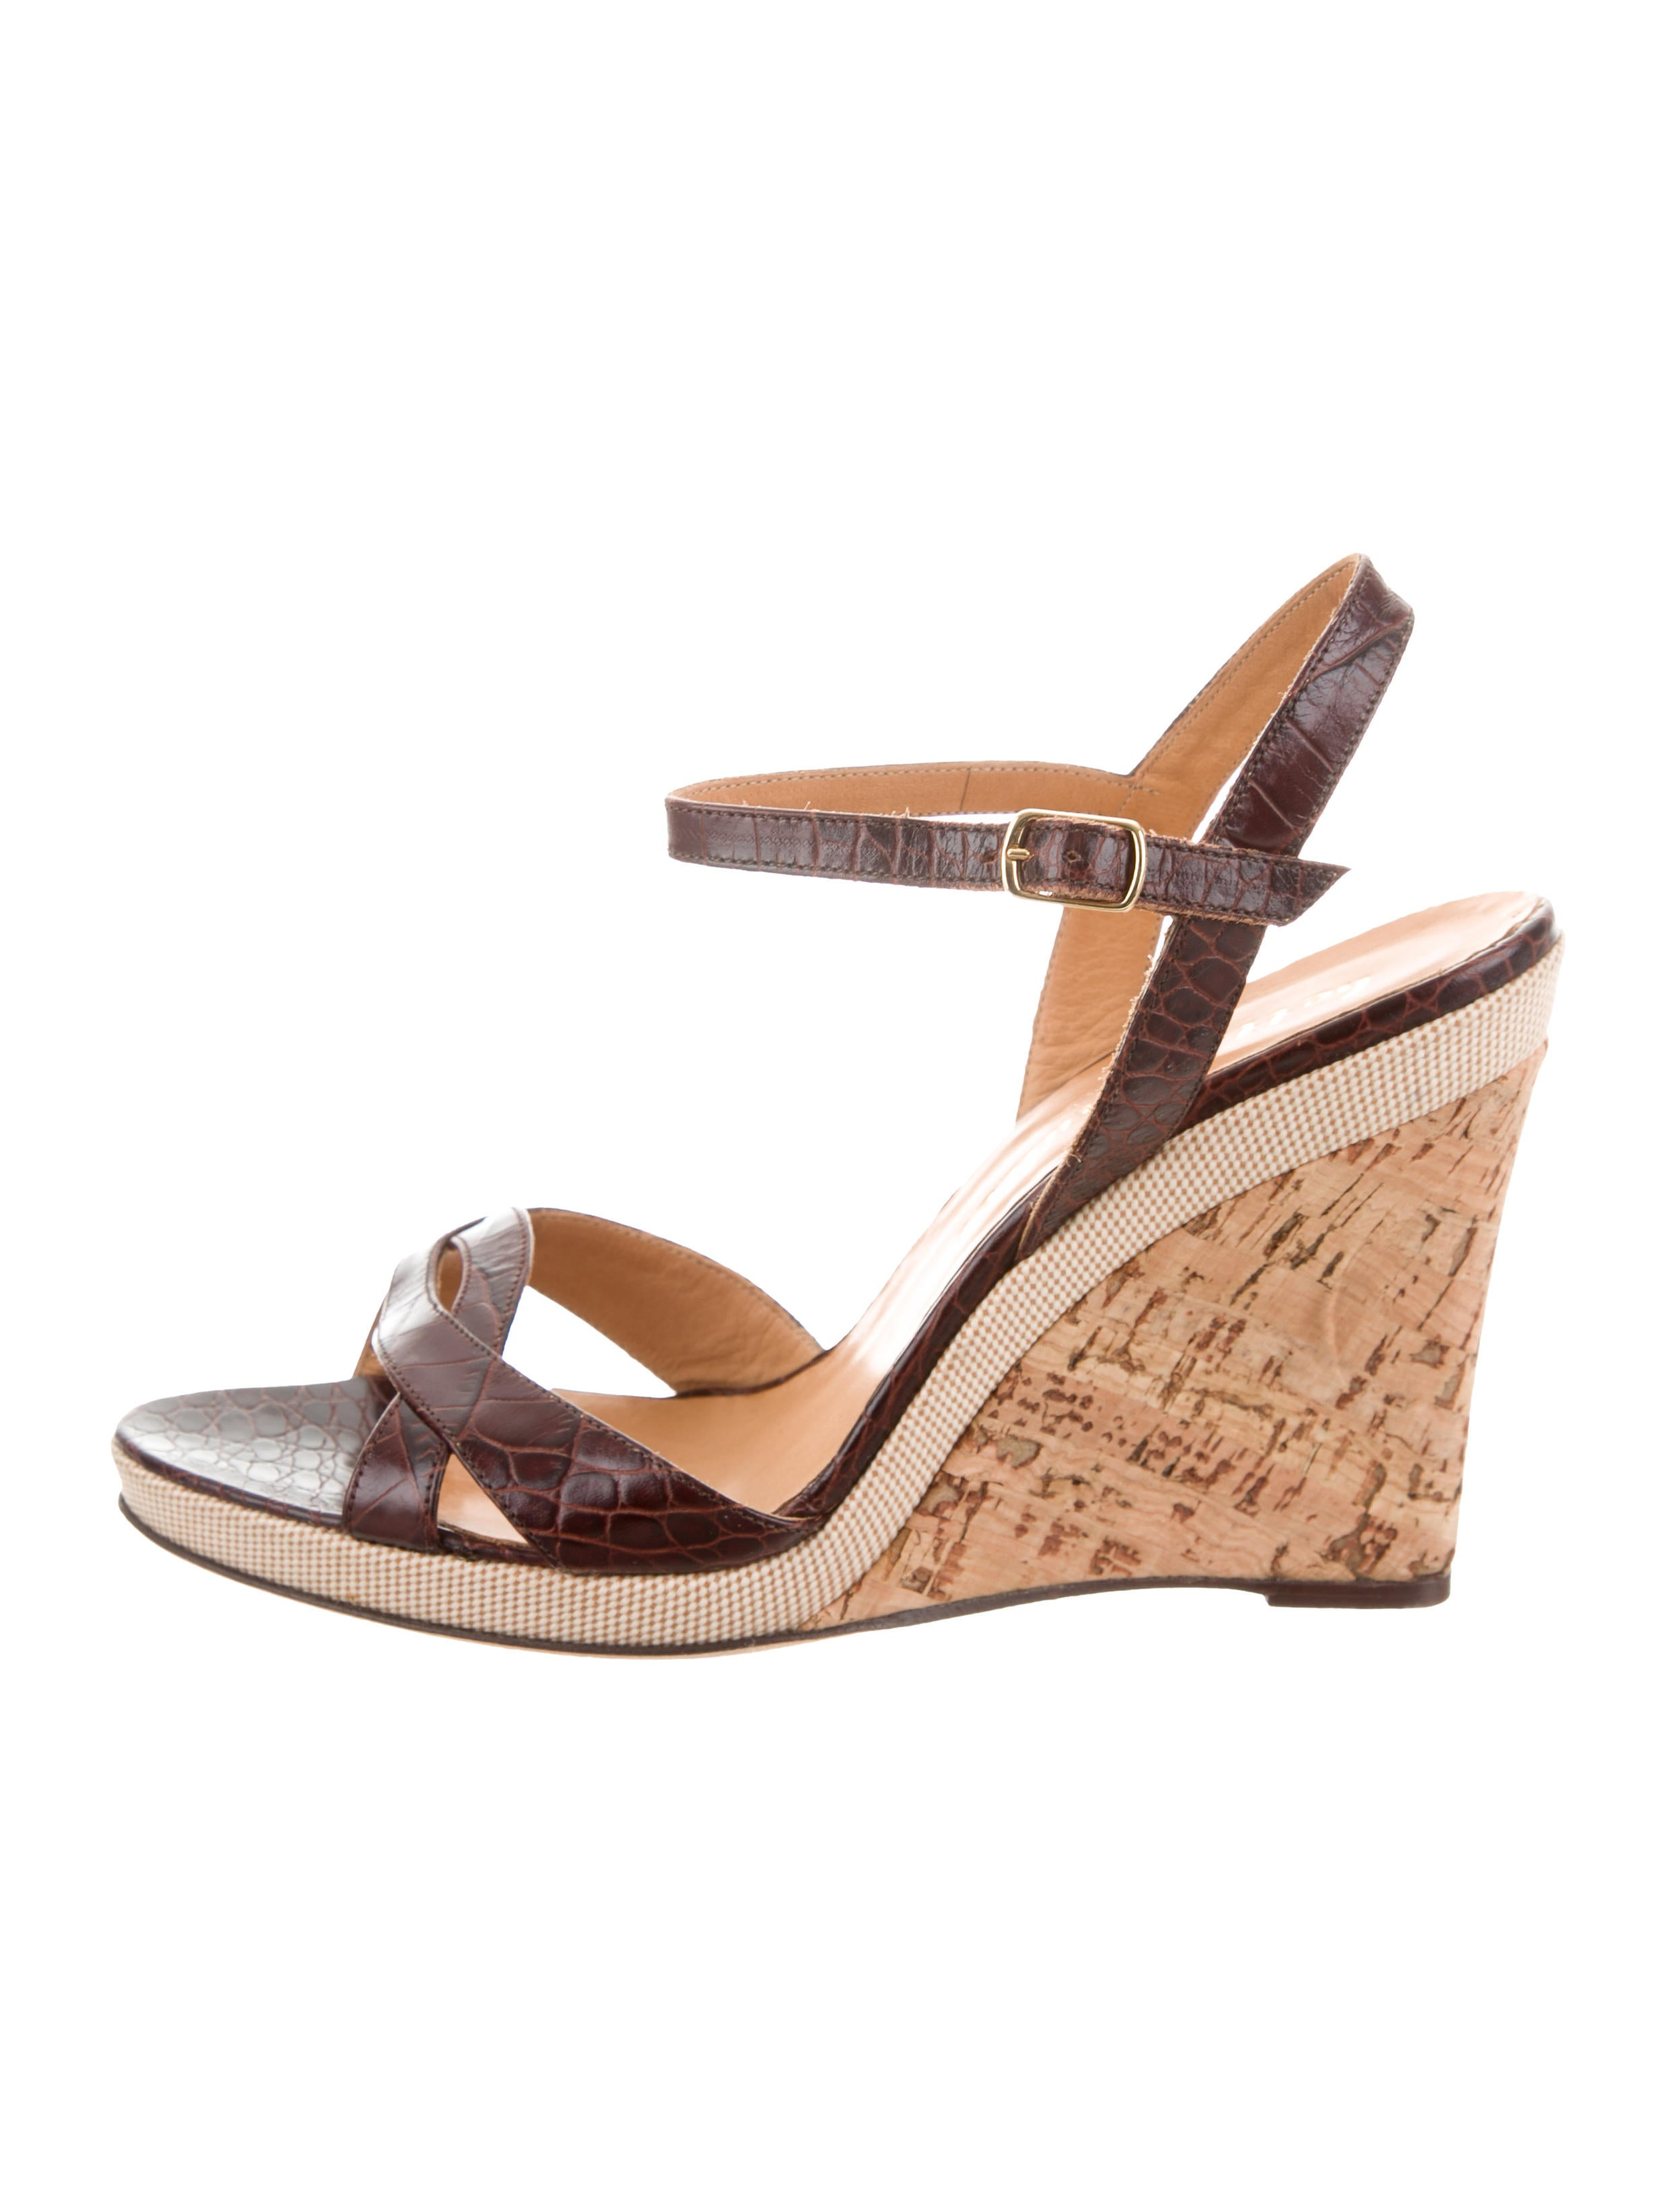 cheap Inexpensive Bettye Muller Embossed Ankle-Strap Sandals sale best seller MPxMHBng7O